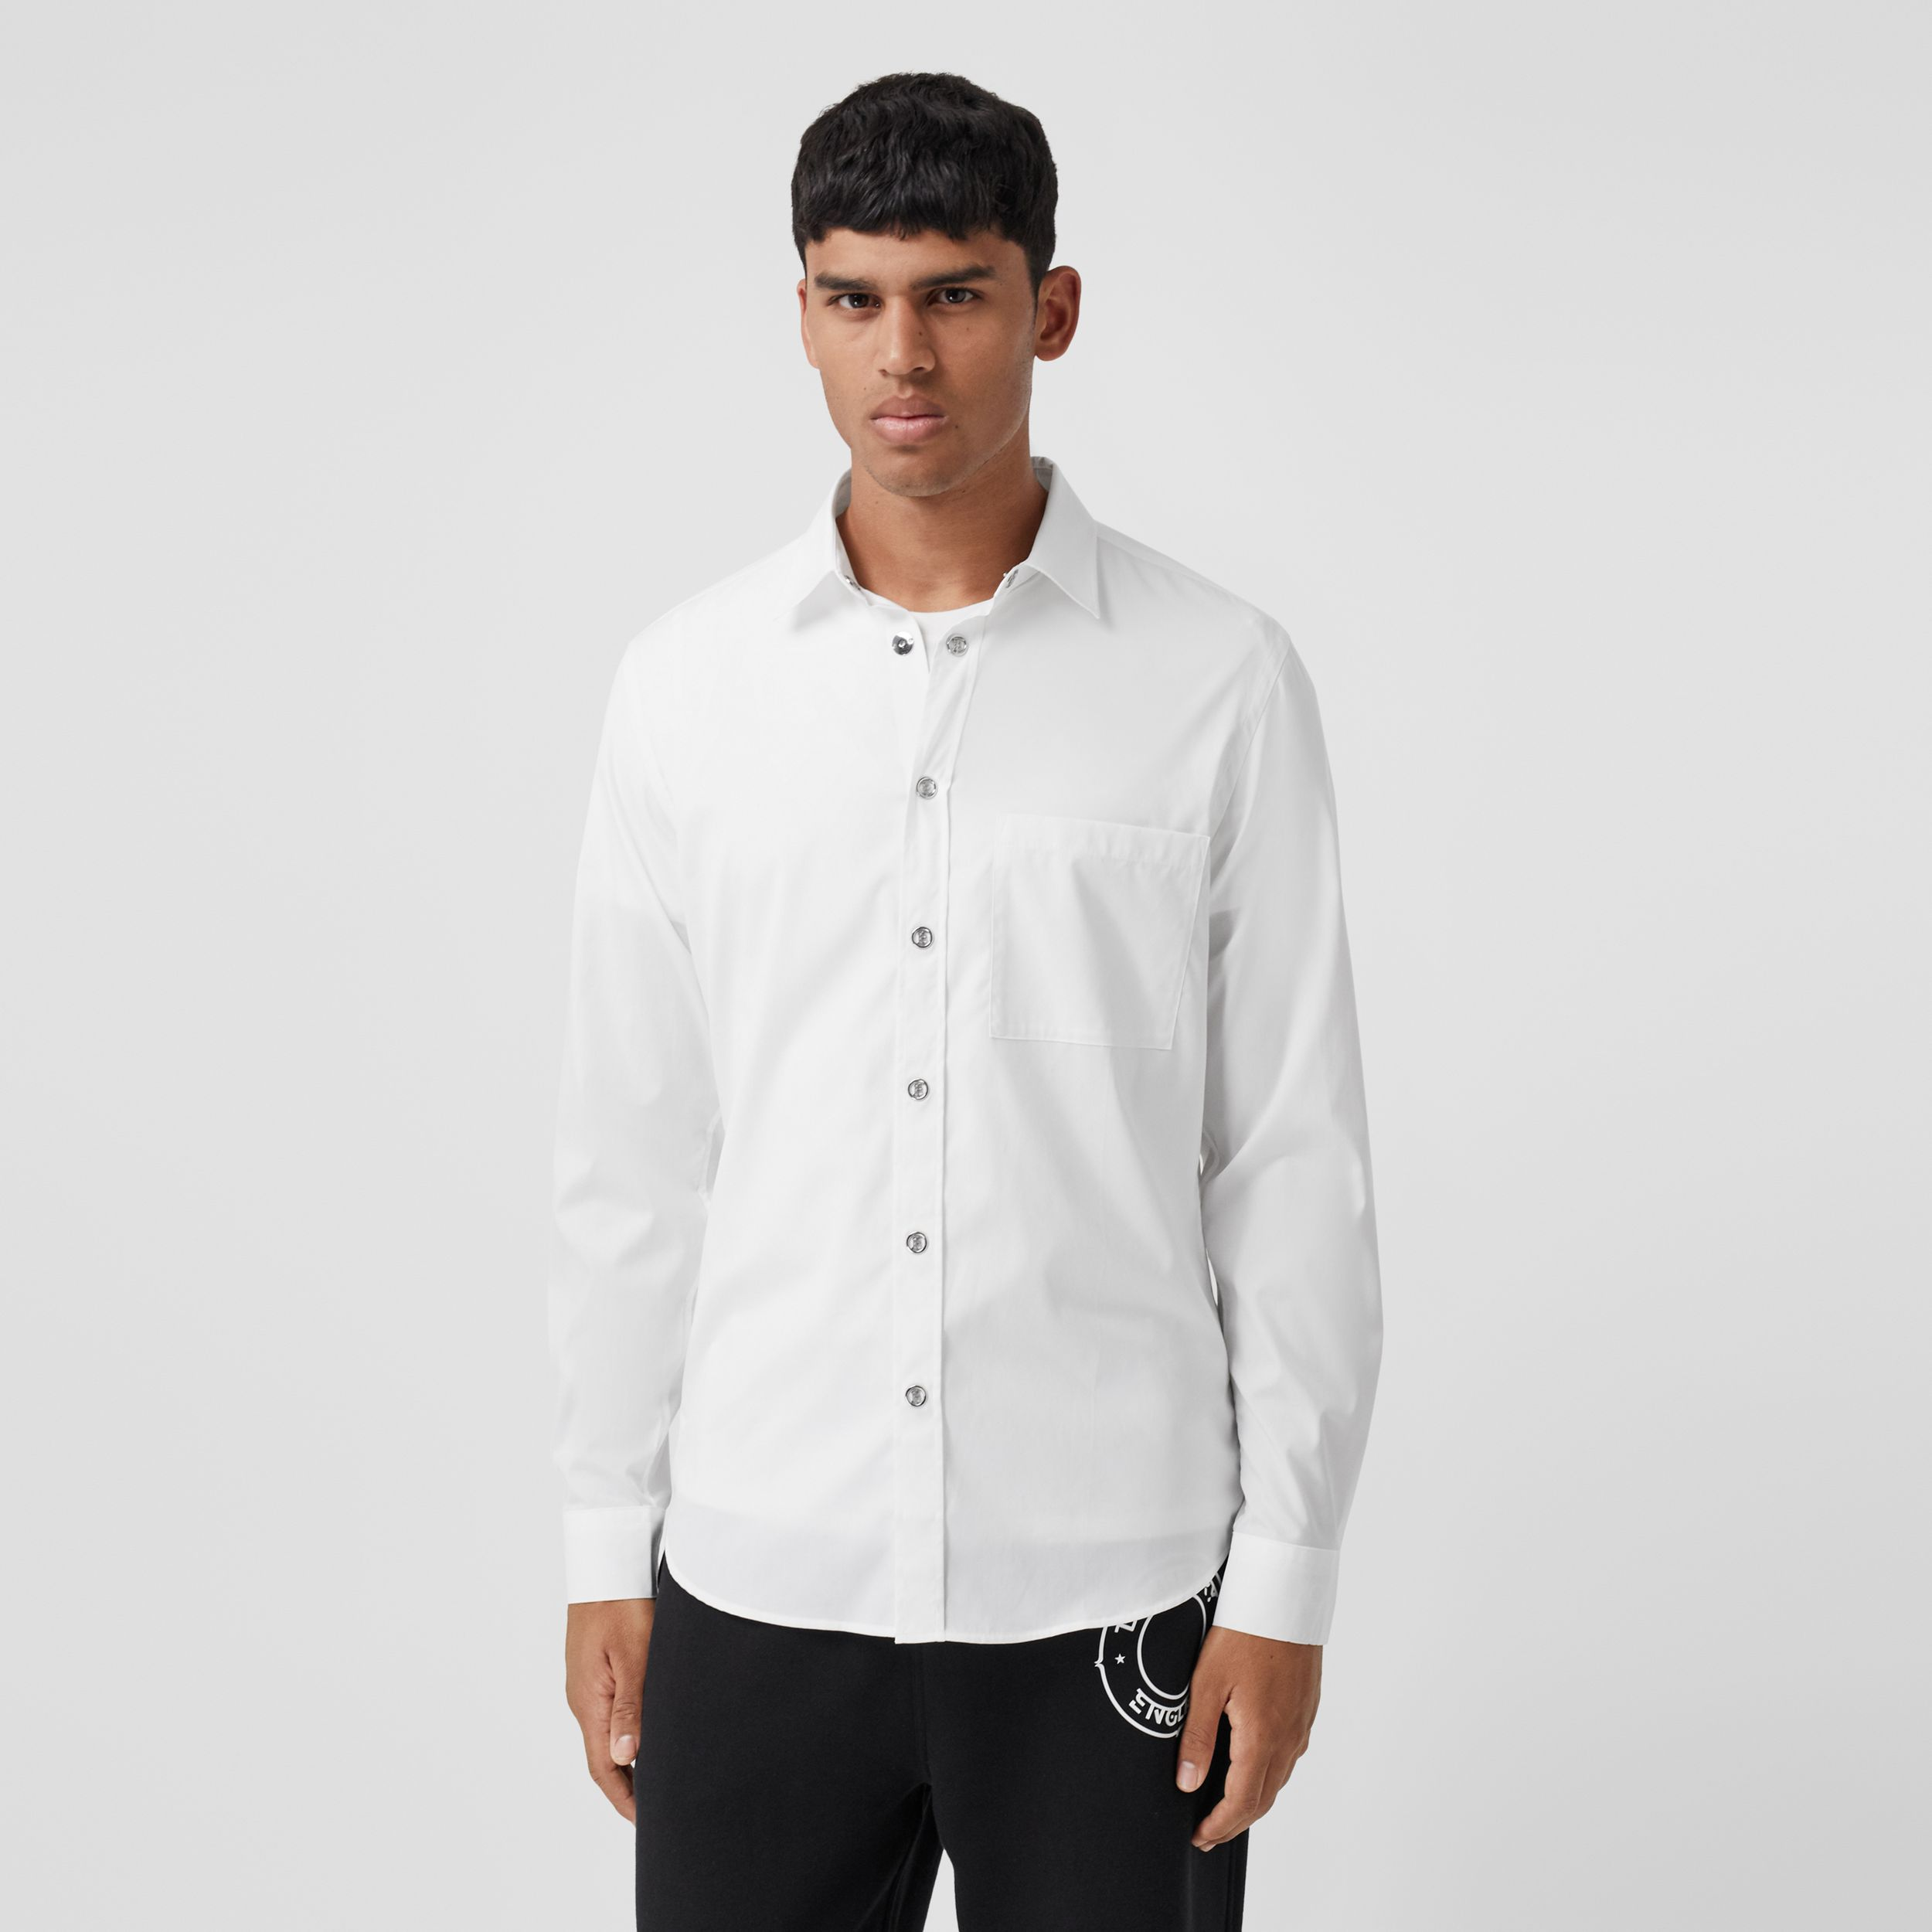 Monogram Motif Stretch Cotton Shirt in White | Burberry - 1